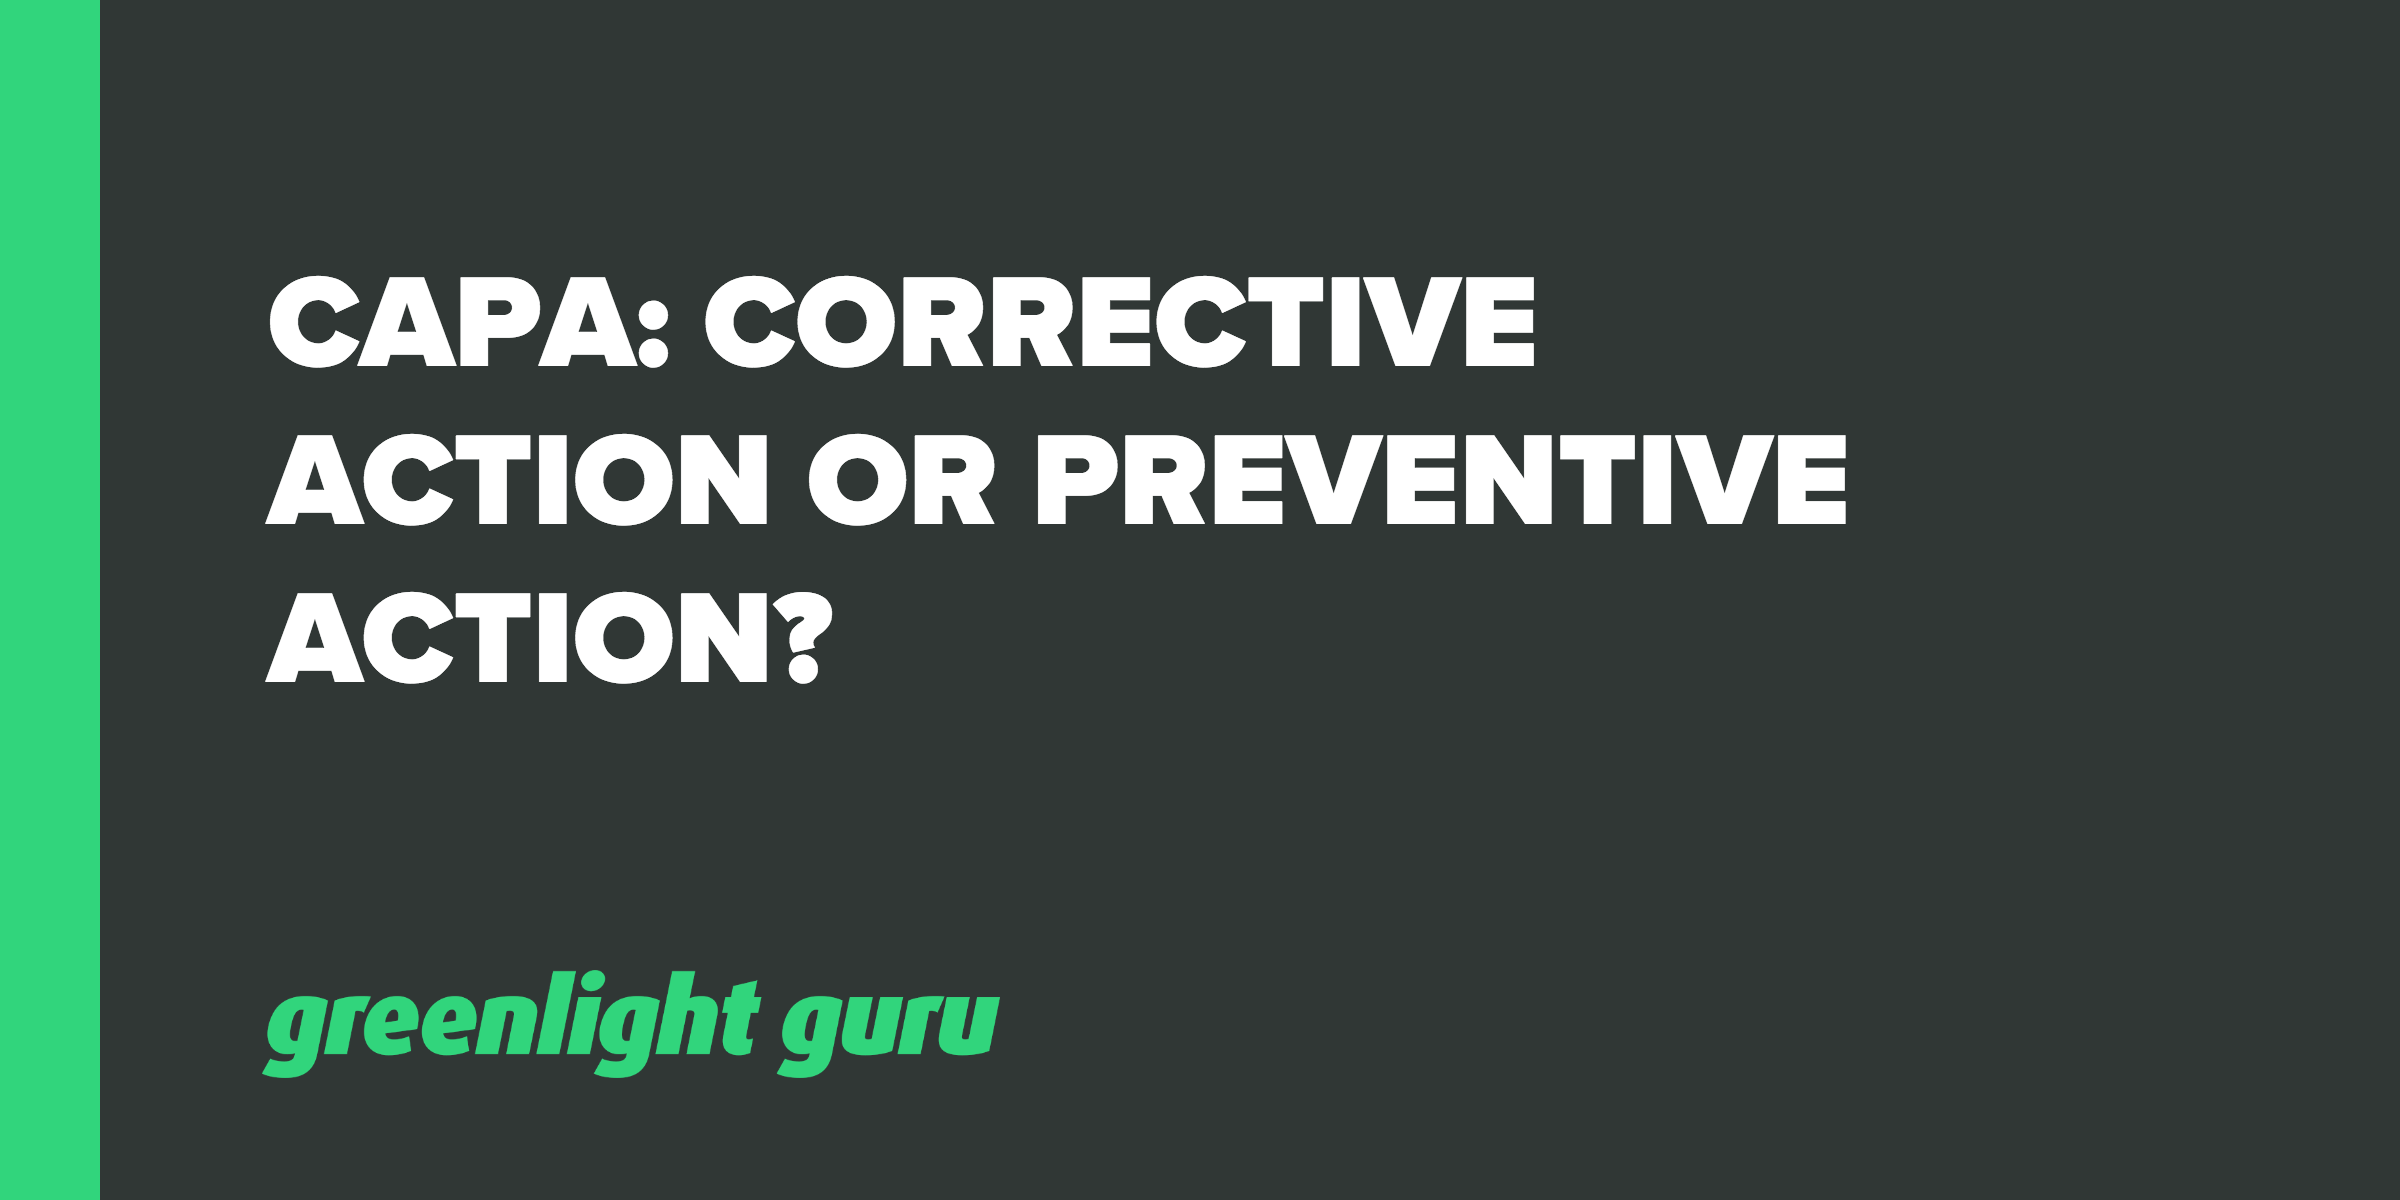 CAPA: When to Take Corrective Action or Preventive Action? - Featured Image